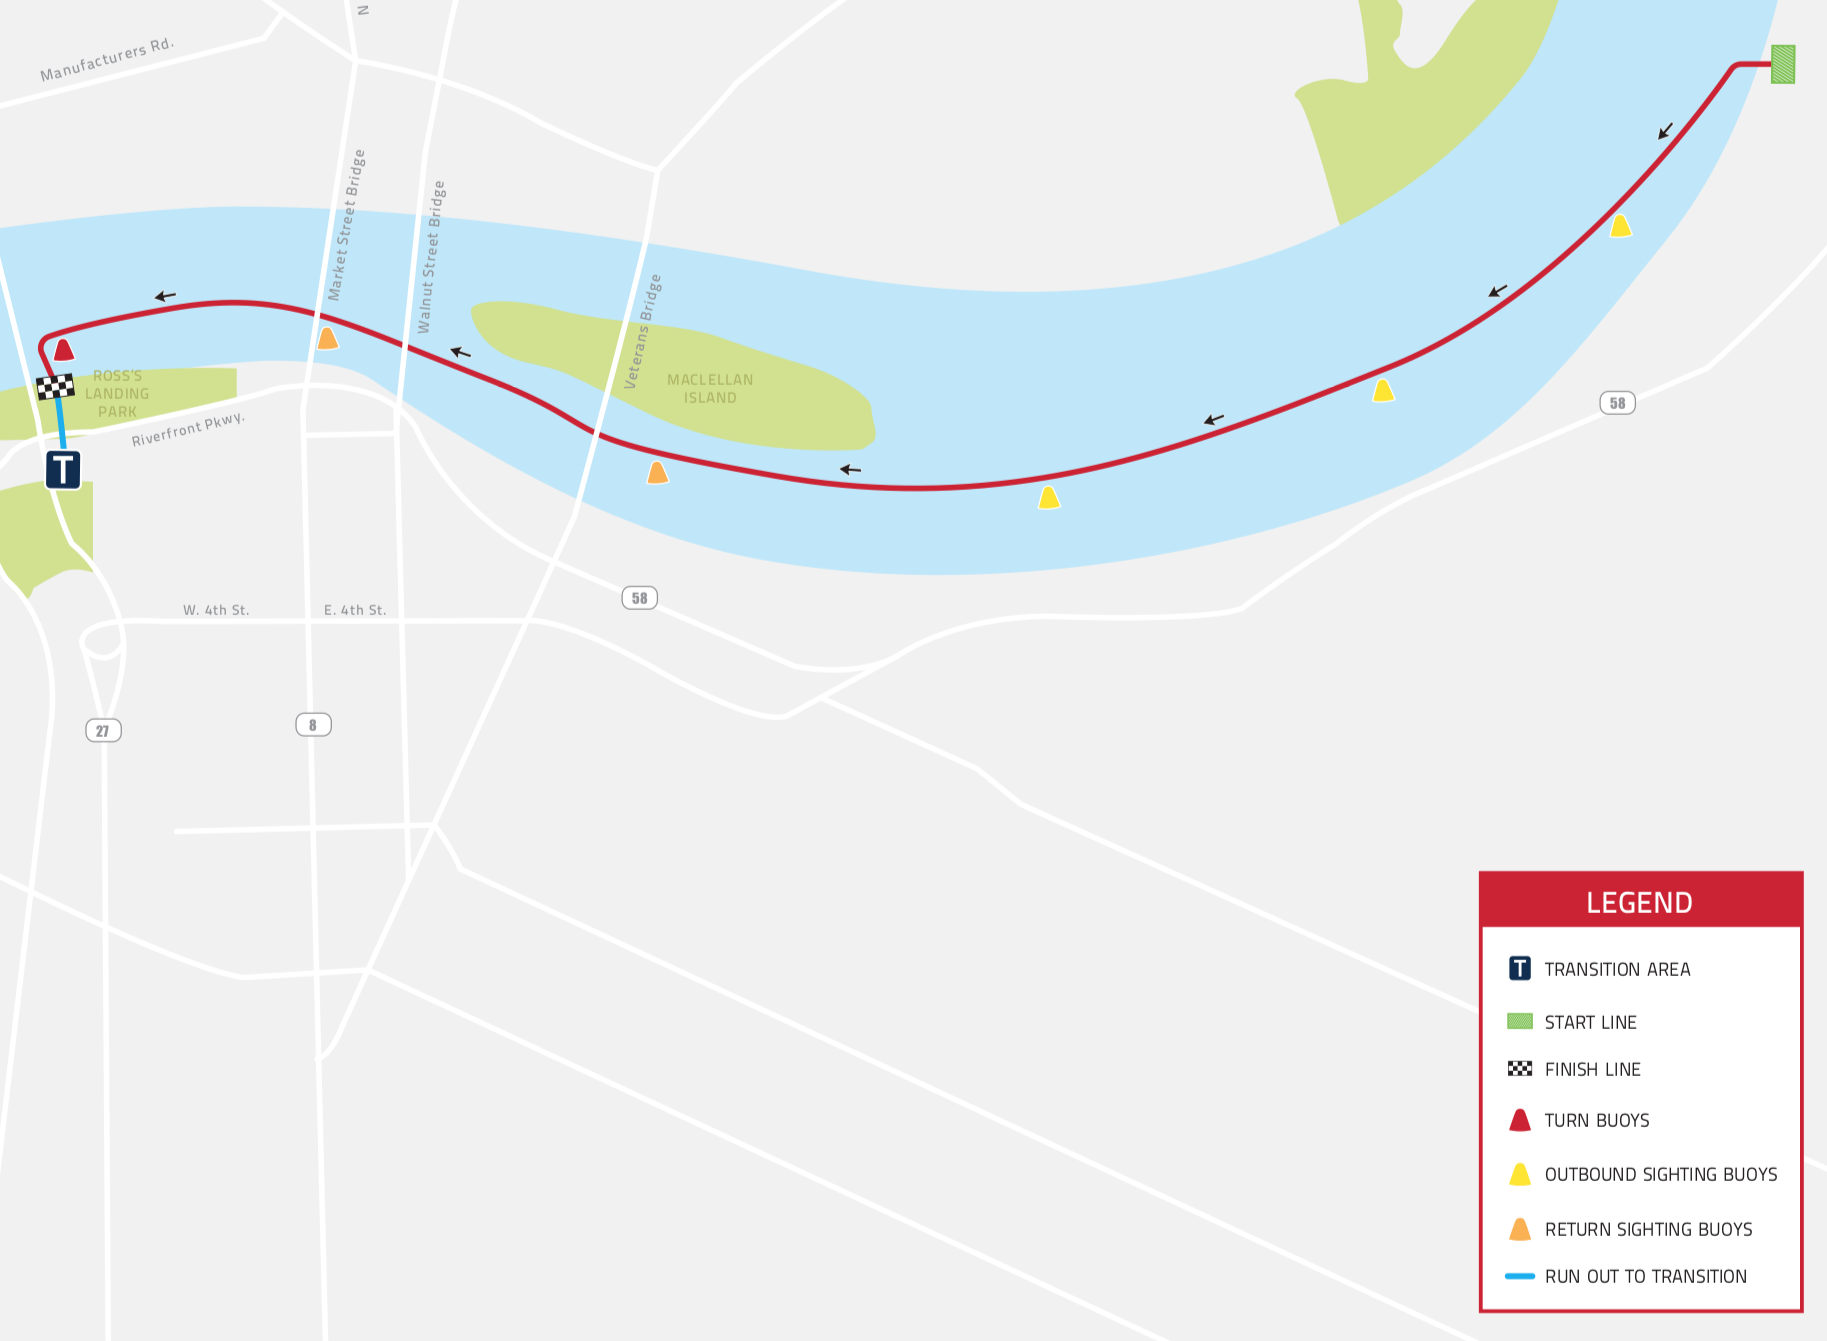 The point-to-point swim in the Tennessee River will start 2.4 miles upstream of transition. Athletes will enter the water in a rolling start.